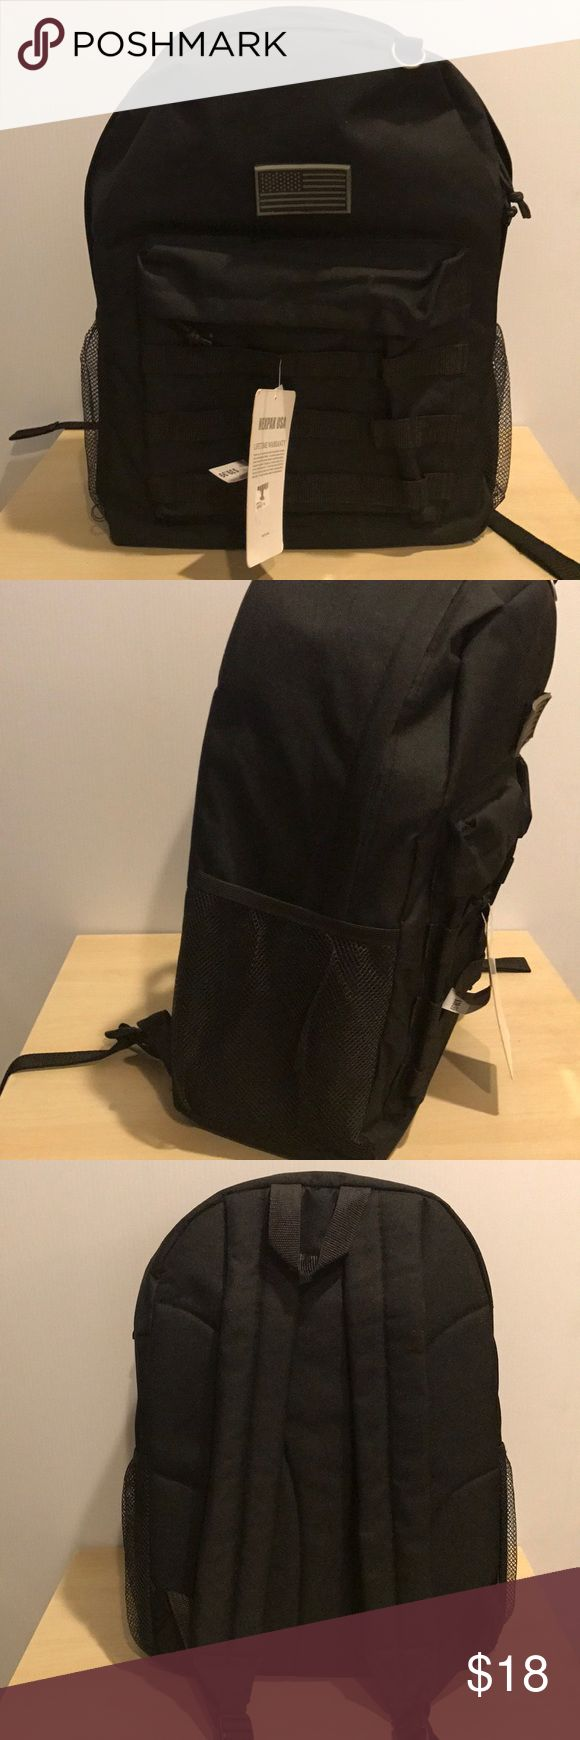 "Black basic tactical backpack Nwt regular basic backpack size 18""x13.5""x7"". 1 front pocket with Molle straps. 1 main compartment. 2 mesh sides. D-ring. Comes with small American flag Velcro patch . Bags Backpacks"